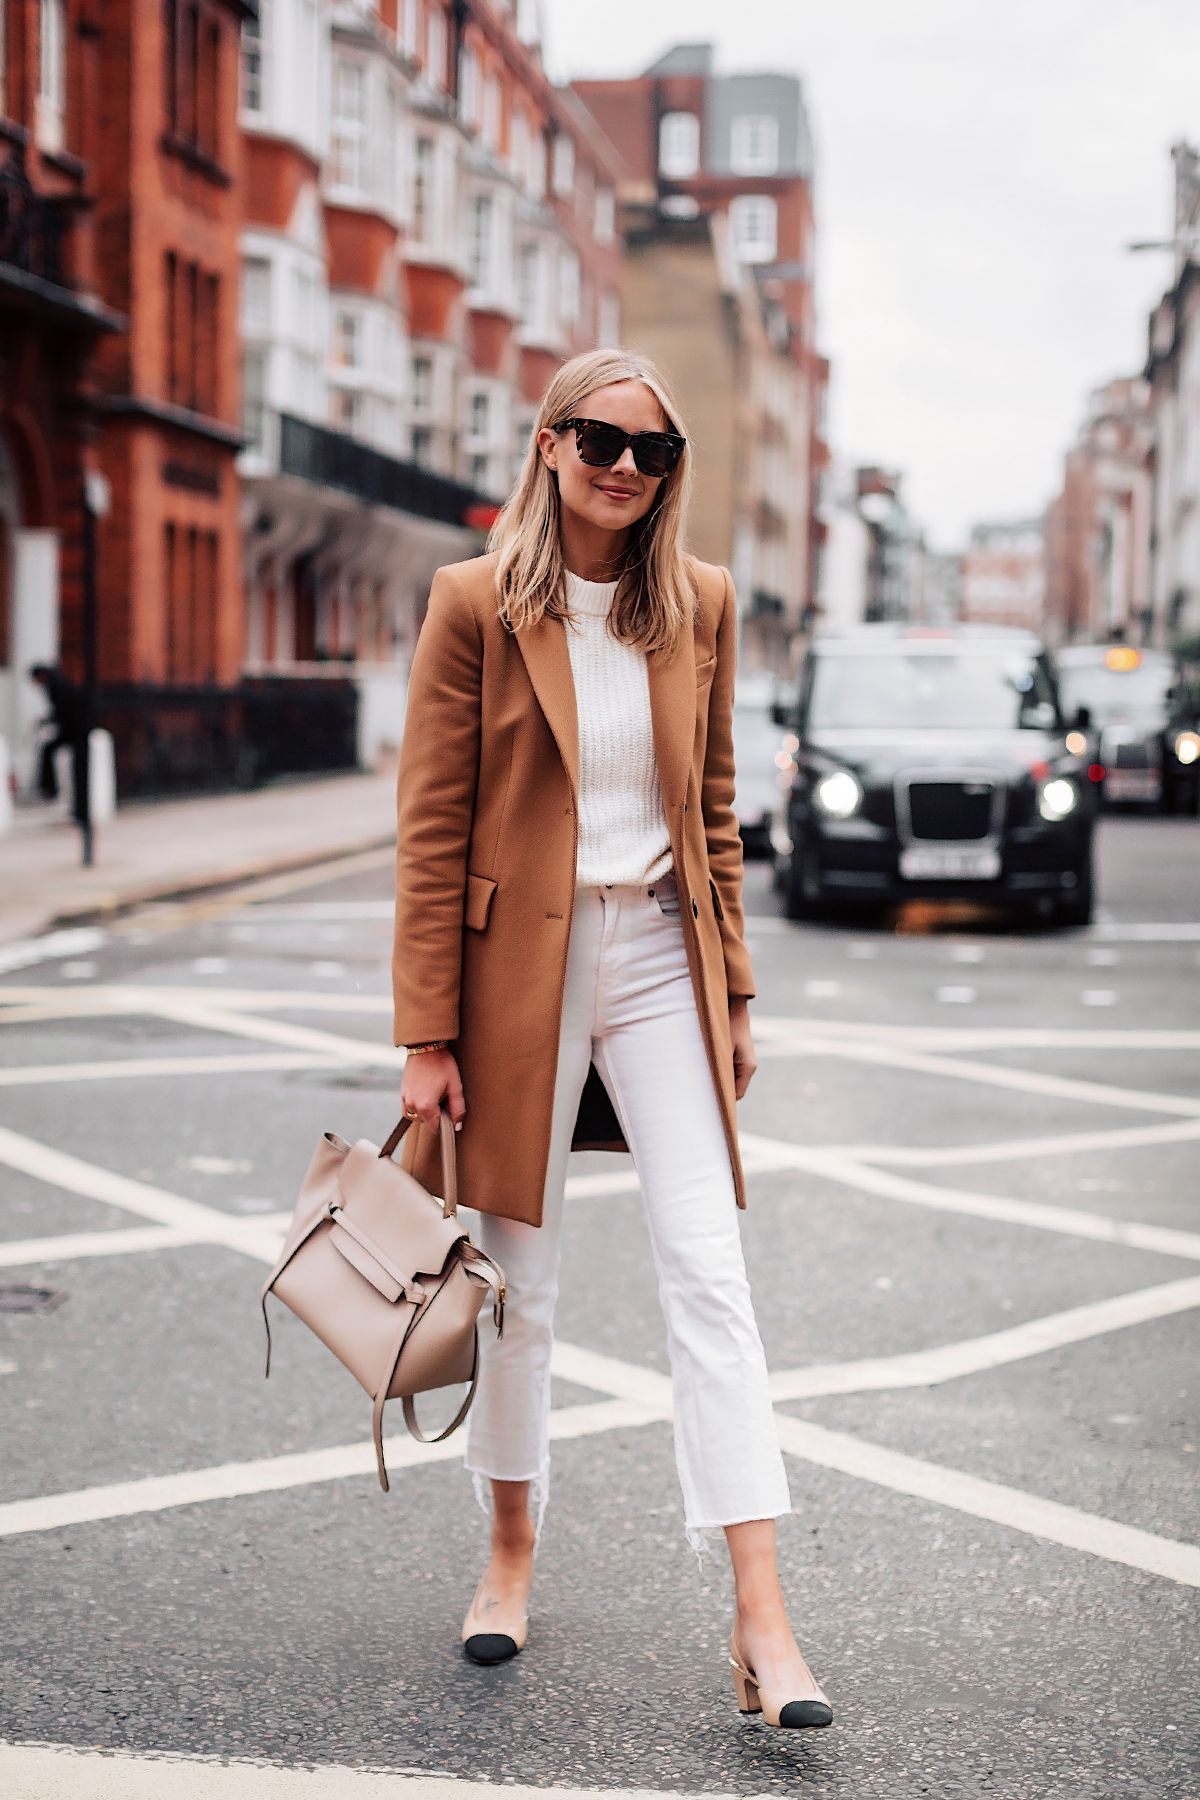 bd37651eb9 Blonde Woman Wearing Zara Camel Coat White Sweater White Cropped Jeans  Chanel Slingback Shoes Celine Mini Belt Bag Taupe Fashion Jackson San Diego  Fashion ...